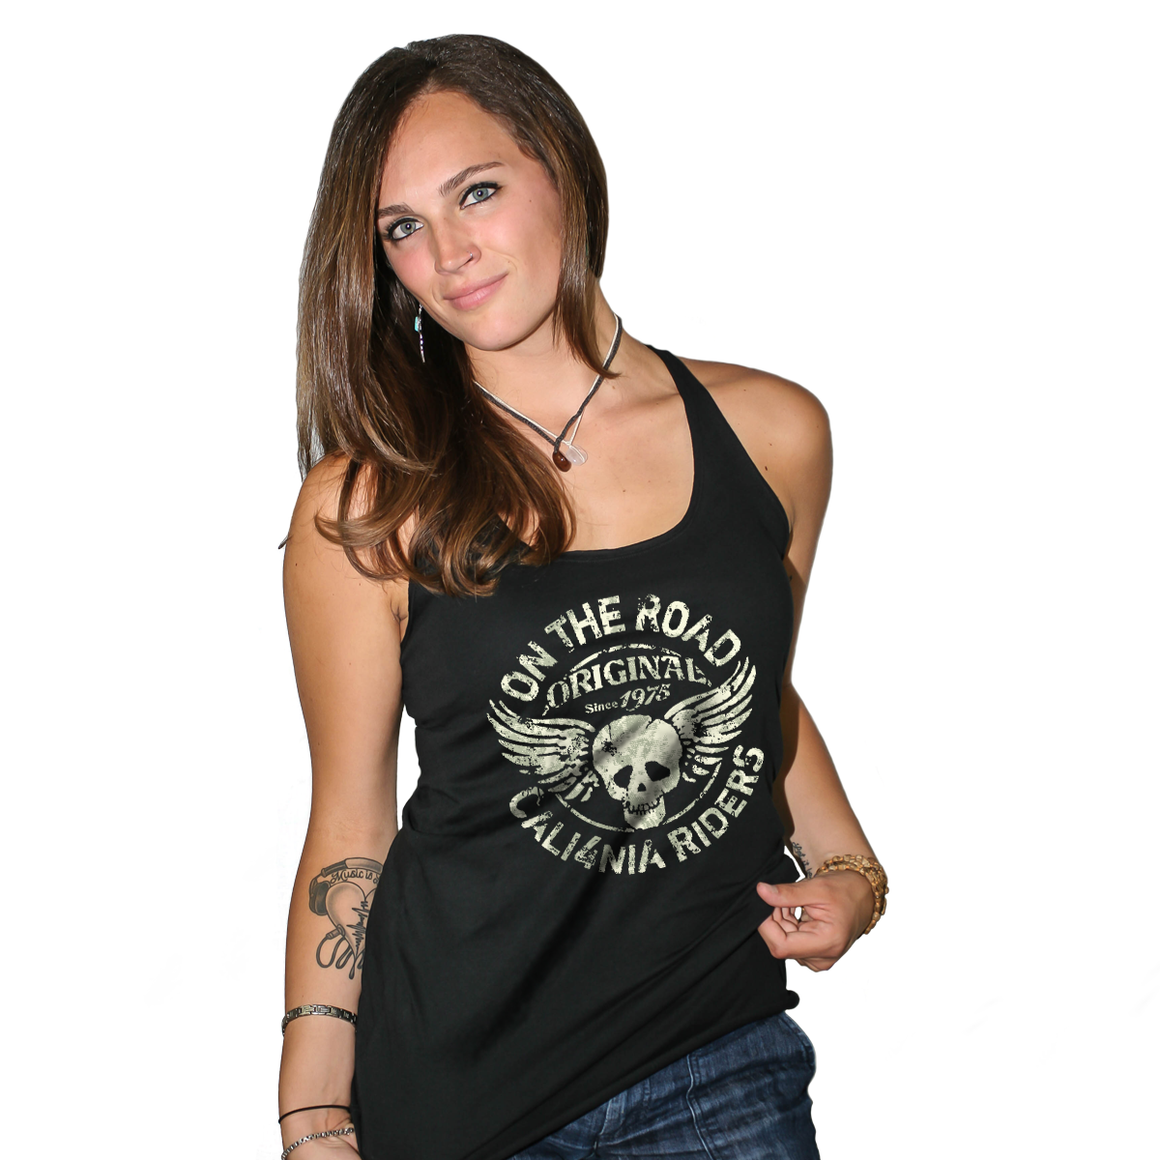 On The Road Original Vintage Women's Racerback Tank Top